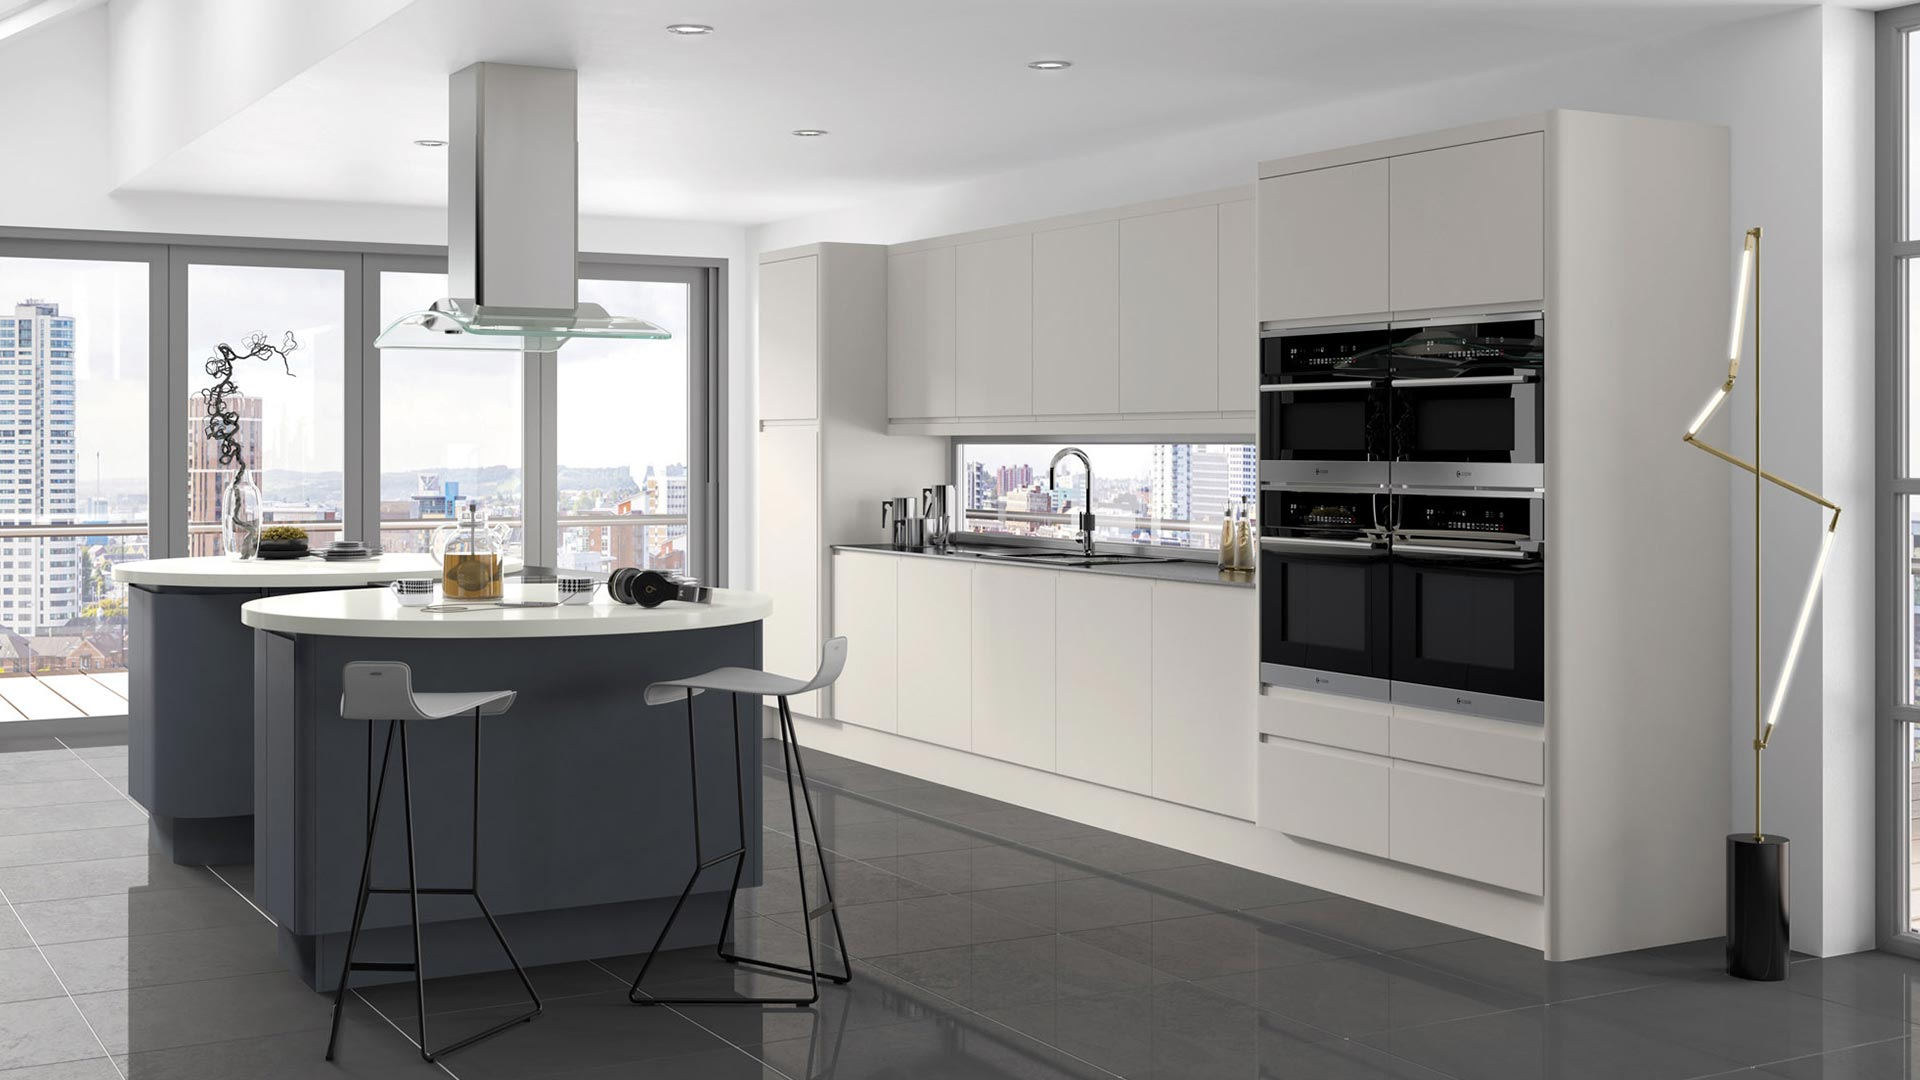 The Victorian Kitchen Company Handmade Bespoke Kitchens By Broadway Birmingham Luxury Fitted